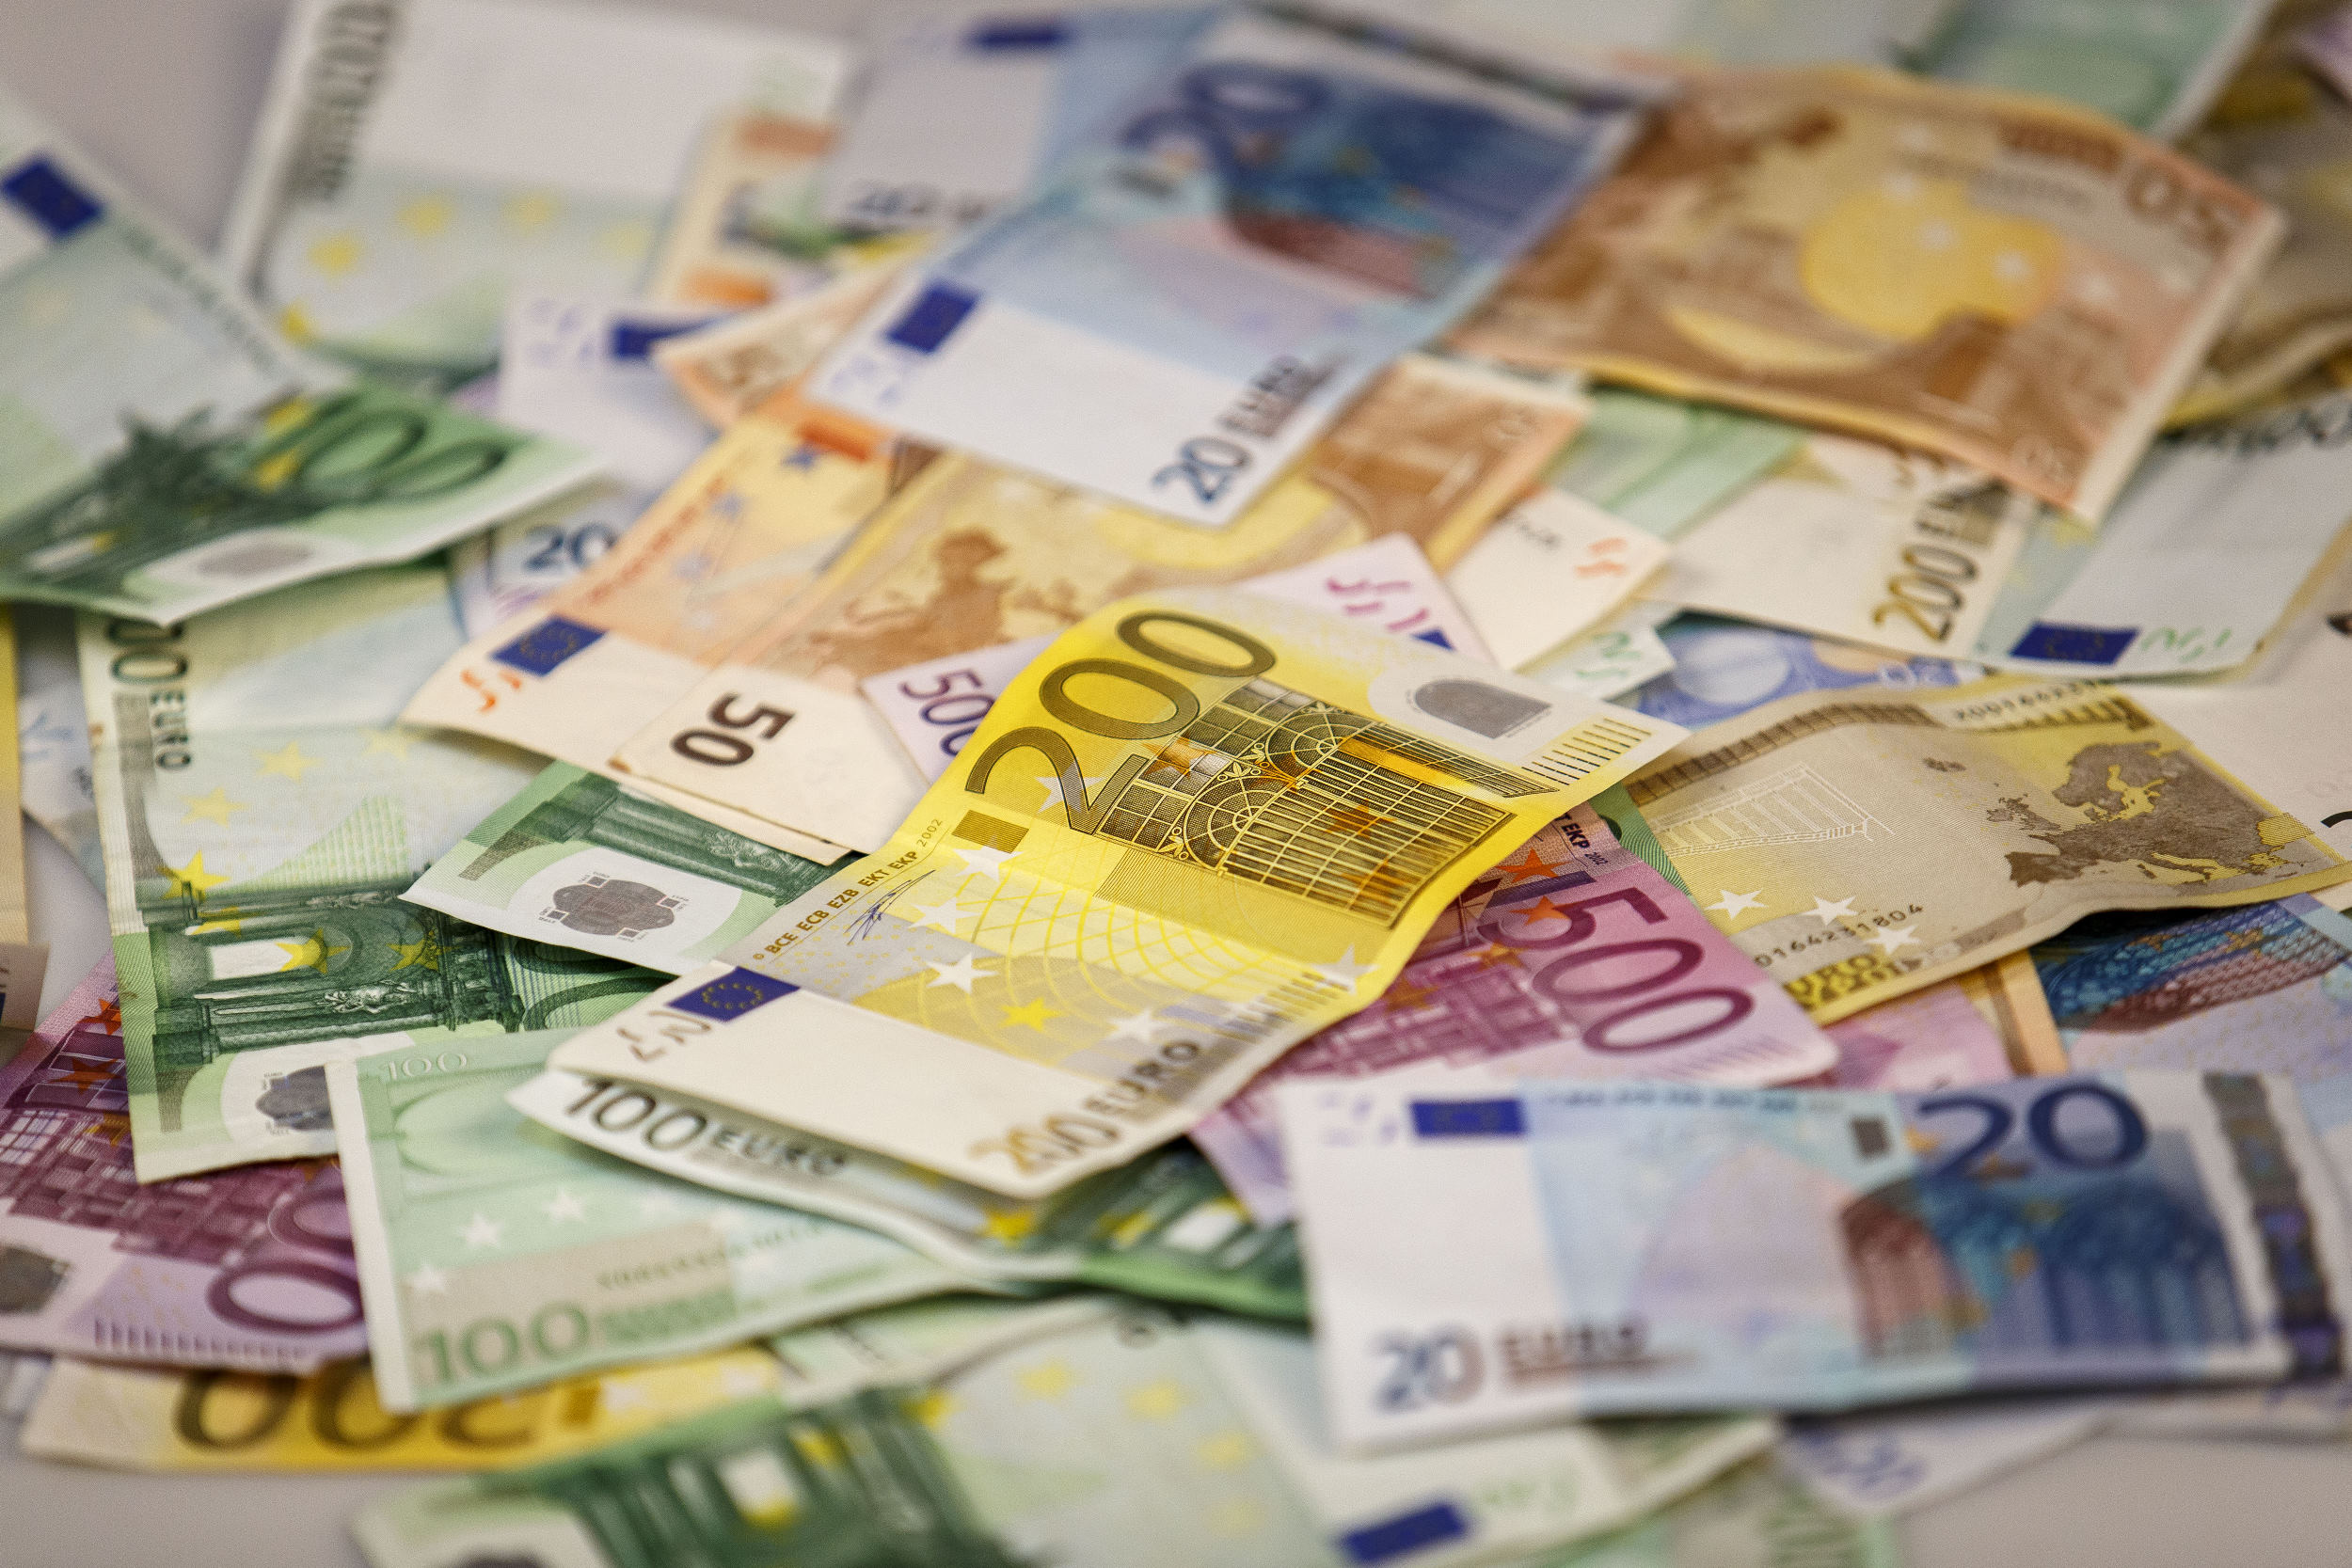 geld, money, bankbiljet, banknote, briefgeld, papiergeld, bills, stapels, zwartgeld, witwassen, sparen, savings, contant, cash, pensioen